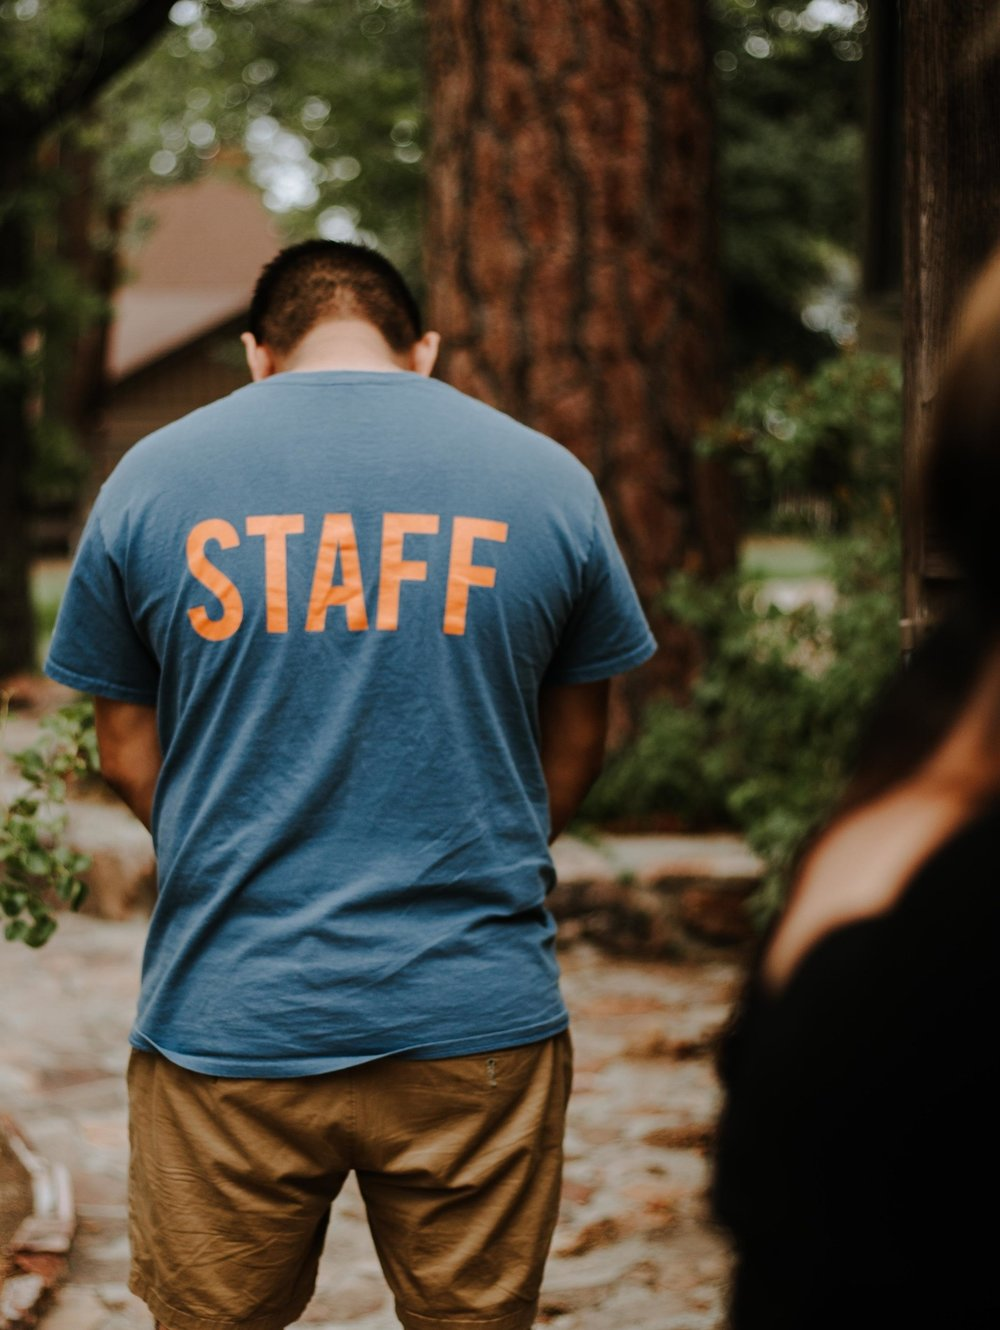 Our Volunteer Staff - Each program is staffed by a fully trained group of adults. Our staff are passionate volunteers made up of qualified employees of co-operatives, credit unions, other youth and agricultural organizations as well as program alumni. In addition to their own qualifications and skills, all volunteer staff must complete a screening process including a criminal record check, attain First Aid and CPR certification, and complete a minimum 48 hour on-site staff training before they are approved to staff at the program.We strive to find the most enthusiastic individuals to staff at our programs, and we are so lucky that they don't mind putting in long hours to make the week an incredible experience.The program is renowned for the commitment, enthusiasm and expertise of our volunteers! If you want to volunteer with the program, visit our volunteer page or get in touch with our Youth Program Coordinator, Liane by emailing her at lcourchesne@acca.coop.